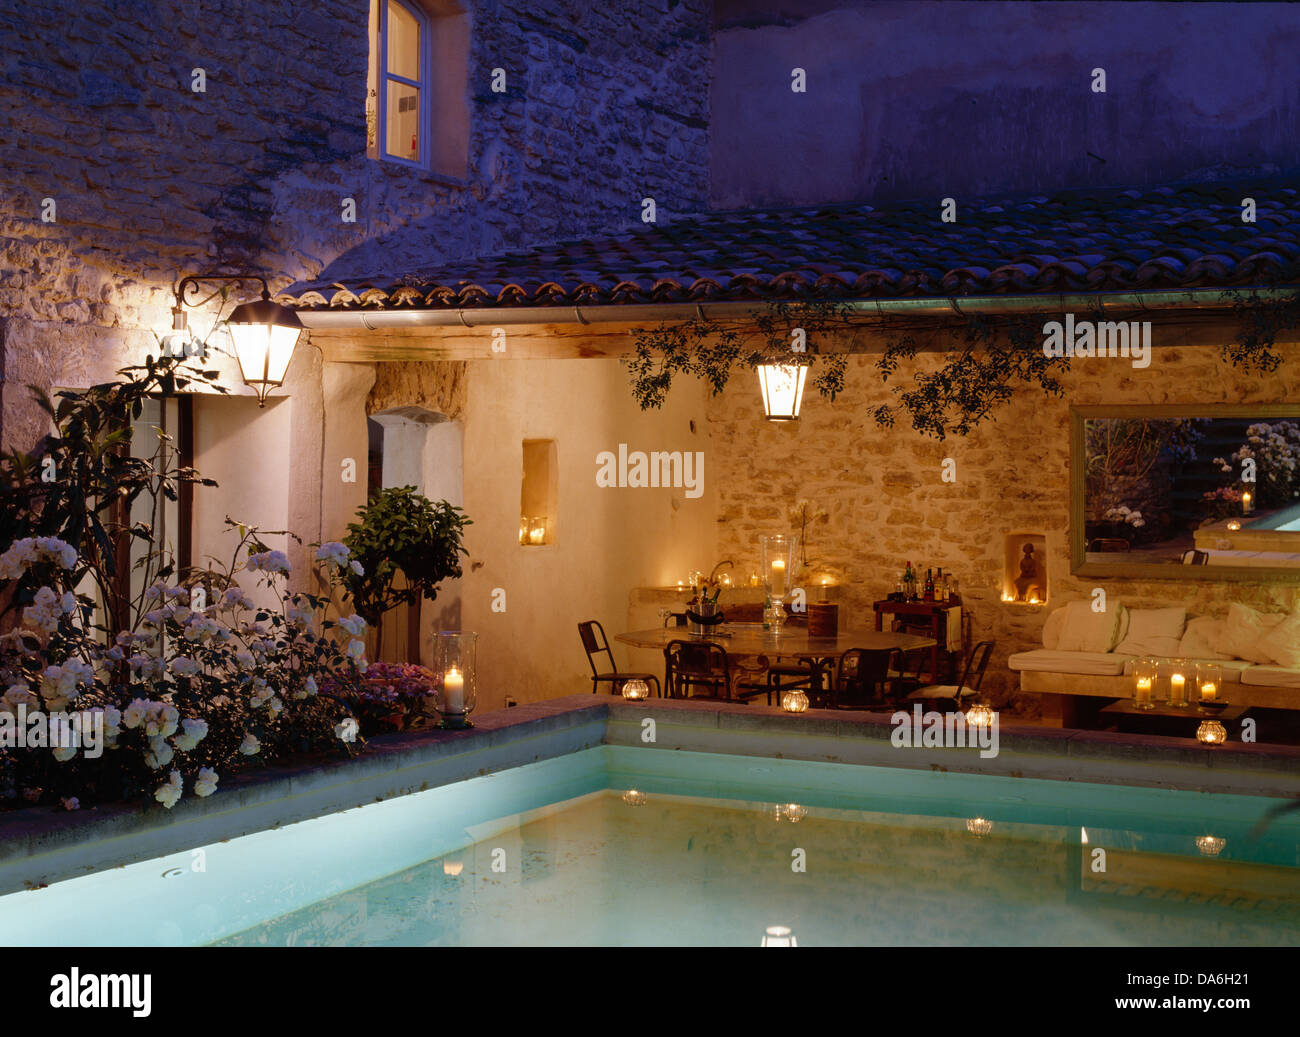 Lights Around Swimming Pool Of French Country House With Table Set For  Candlelit Dinner On Veranda